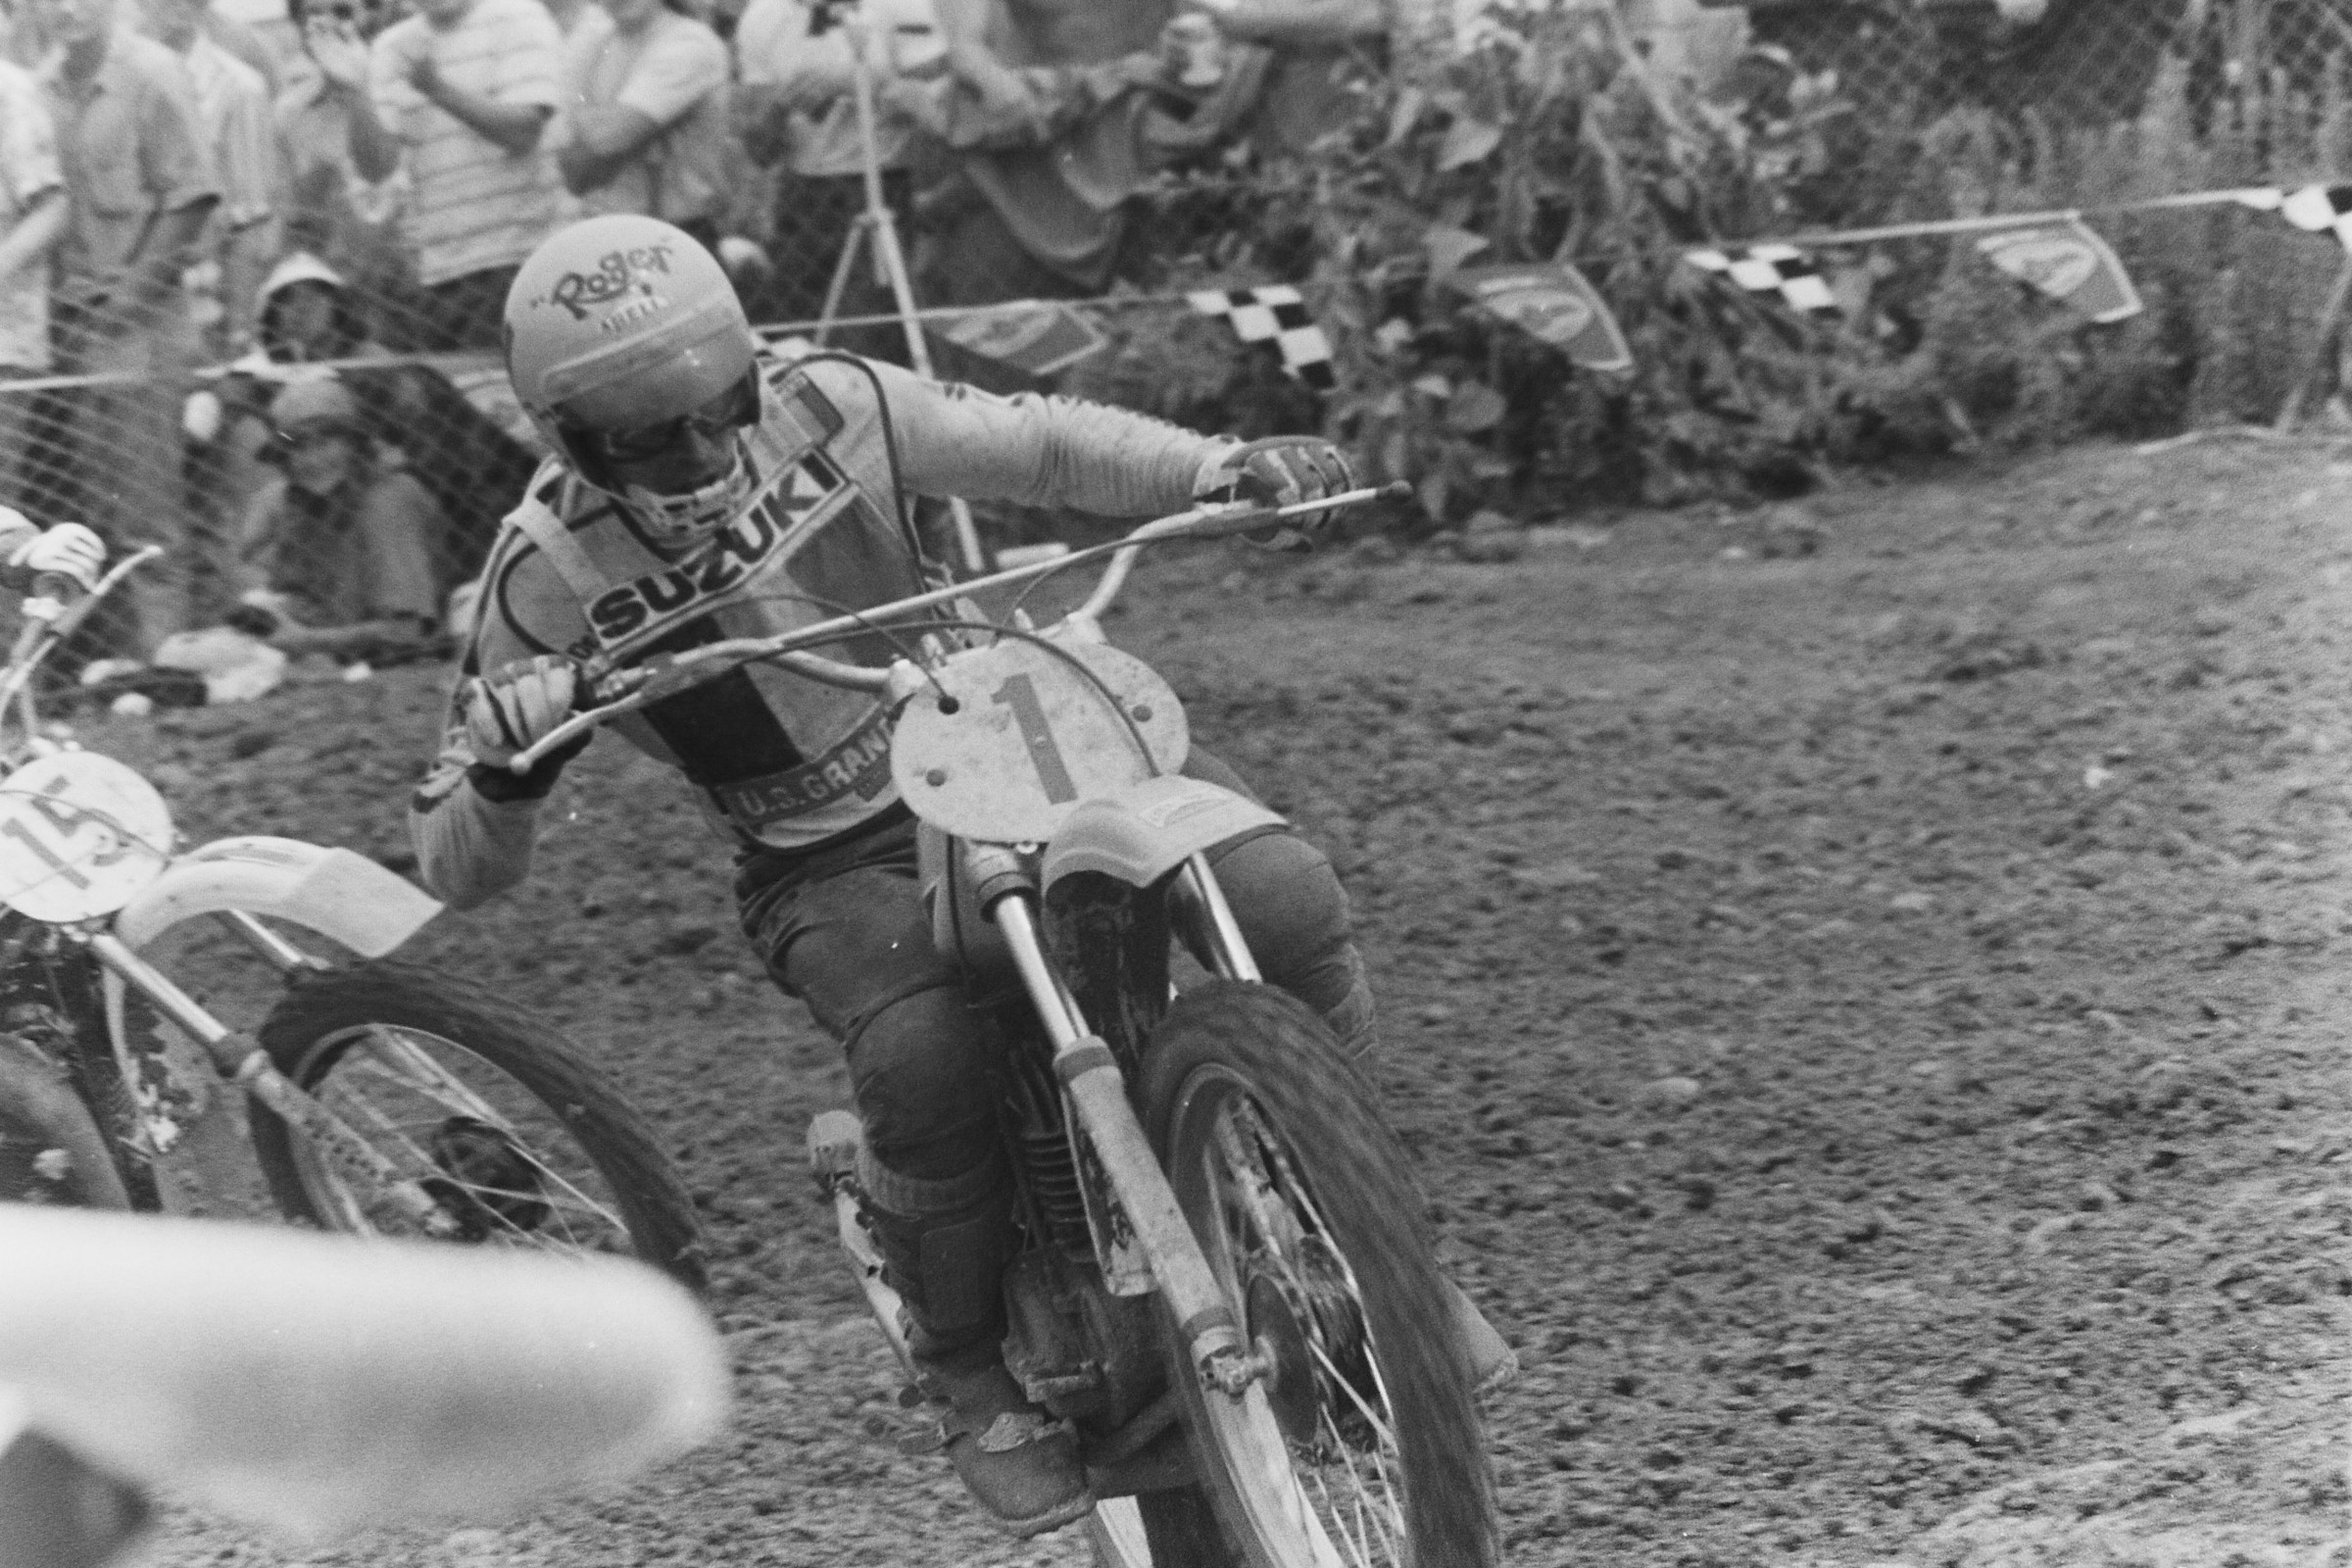 DeCoster won the first moto and gained valuable championship points on fourth place Heikki Mikkola.